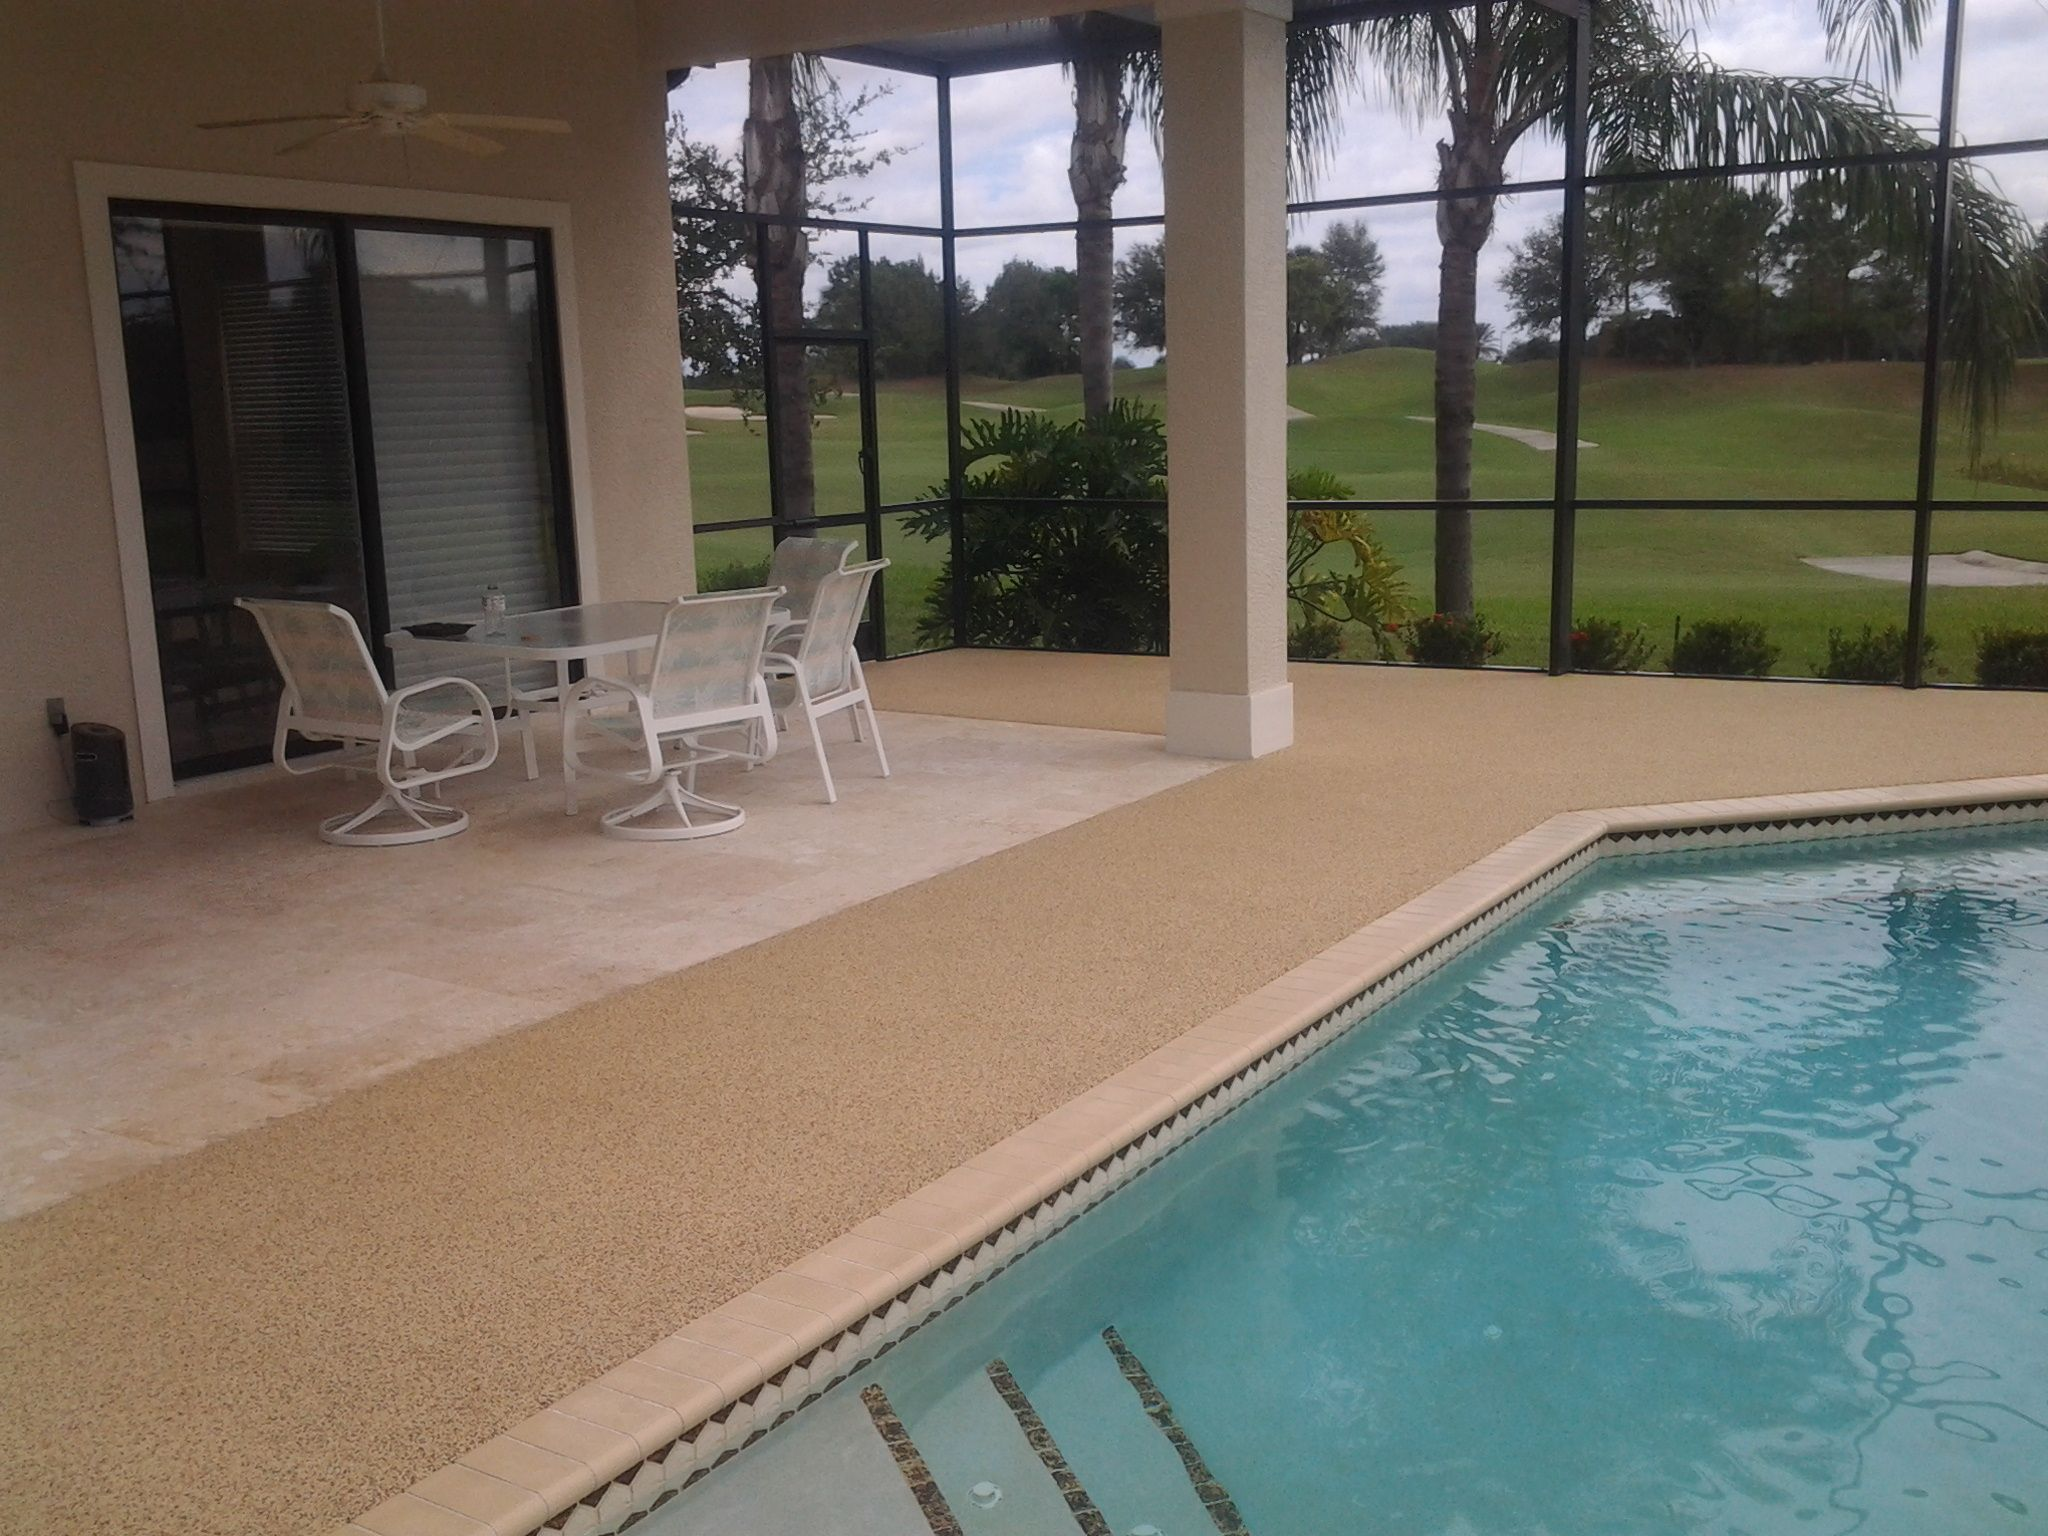 Rubber Pool Surface Around Pool Deck Area And Stone Flooring Under Covered Patio Rubber Pool Deck Area Rubber Flooring Painted Floors Rubber Flooring Bathroom